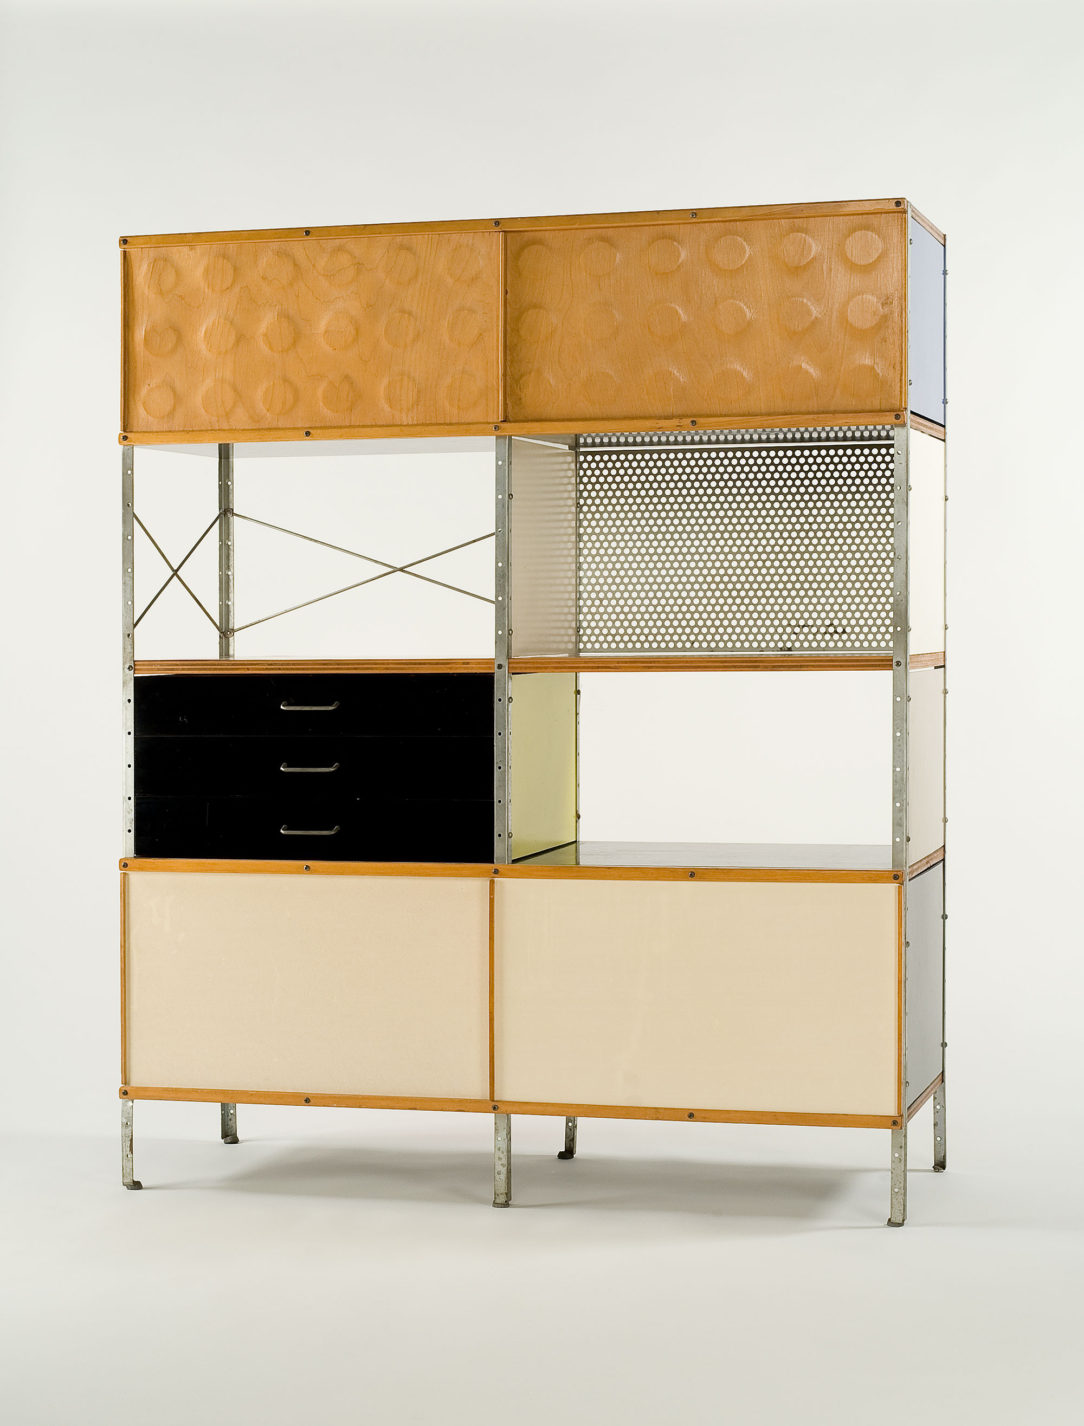 Tall storage unit with a steel frame and modular drawer, cabinet, and shelf components in different materials and colors.